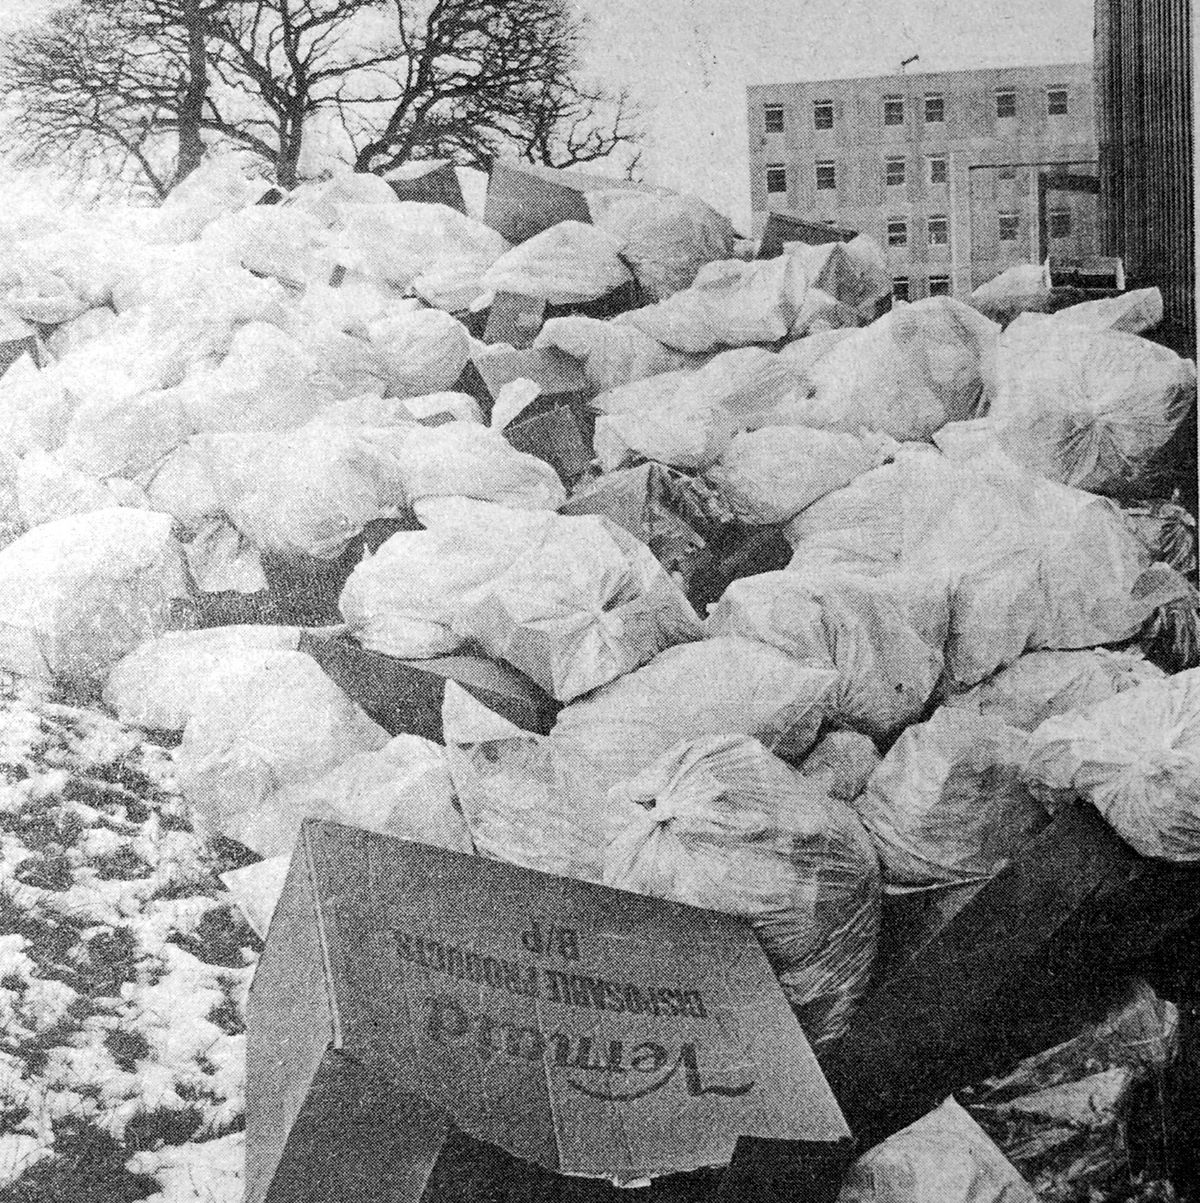 A build-up of rubbish outside the Royal Shrewsbury Hospital in February 1979, caused by an ancillary workers dispute.